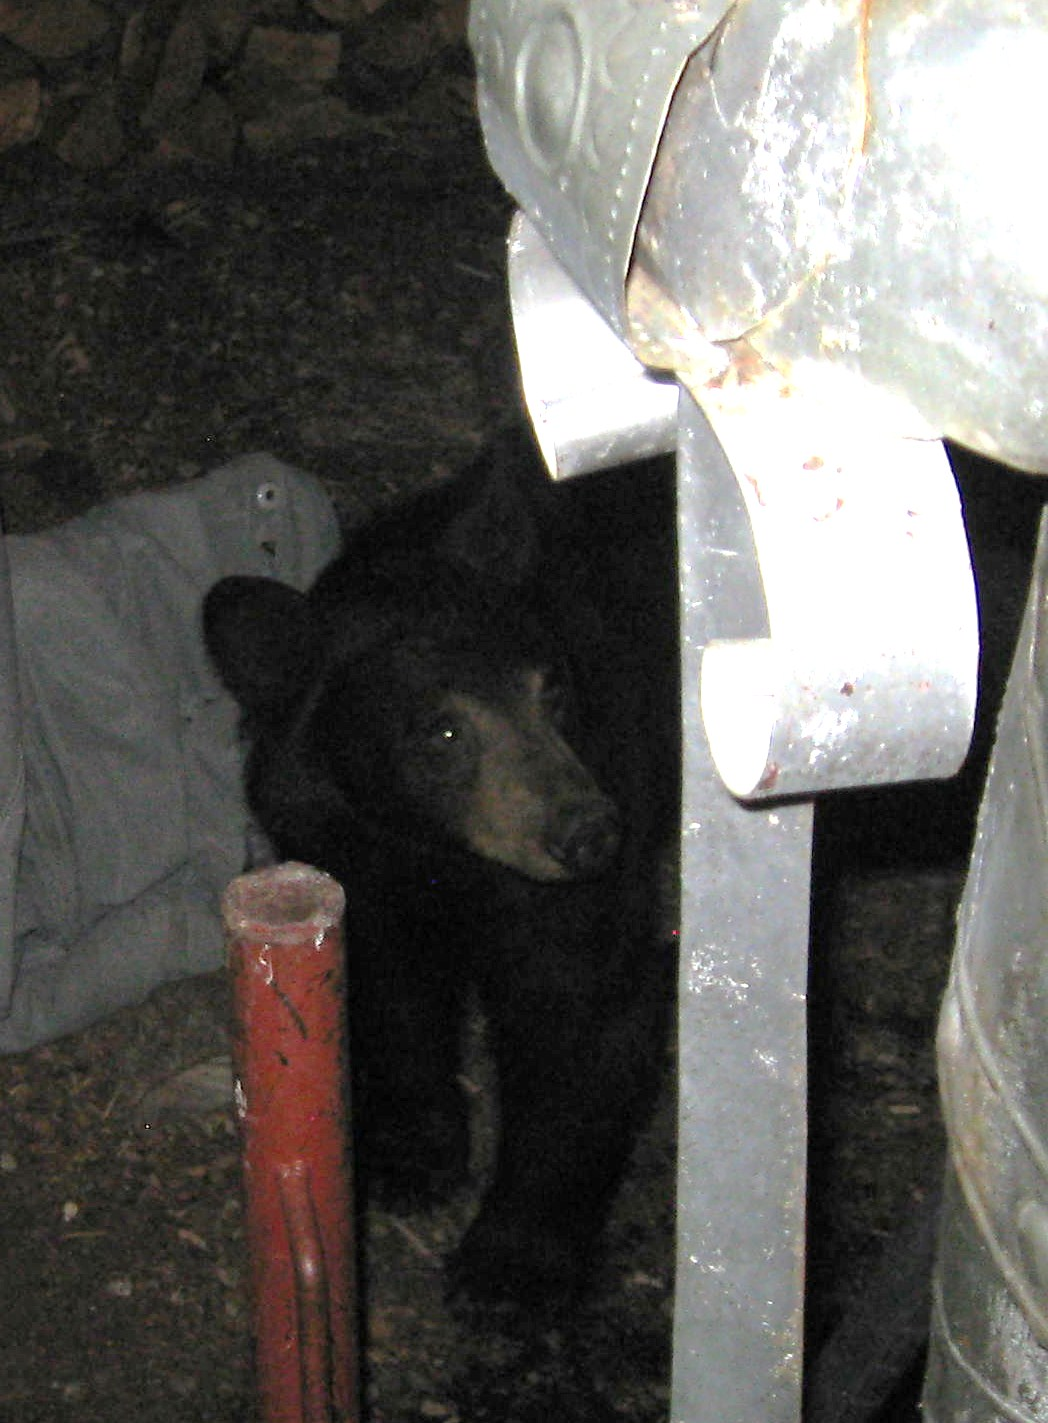 This fellow and a companion showed up at Garyson Sparkman's home on Pioneer Way Friday night, about 9 p.m. At about 10:30 Diane Duquette on Linden discovered two bears in a pine tree close to her house, she said. [Sparkman photo]